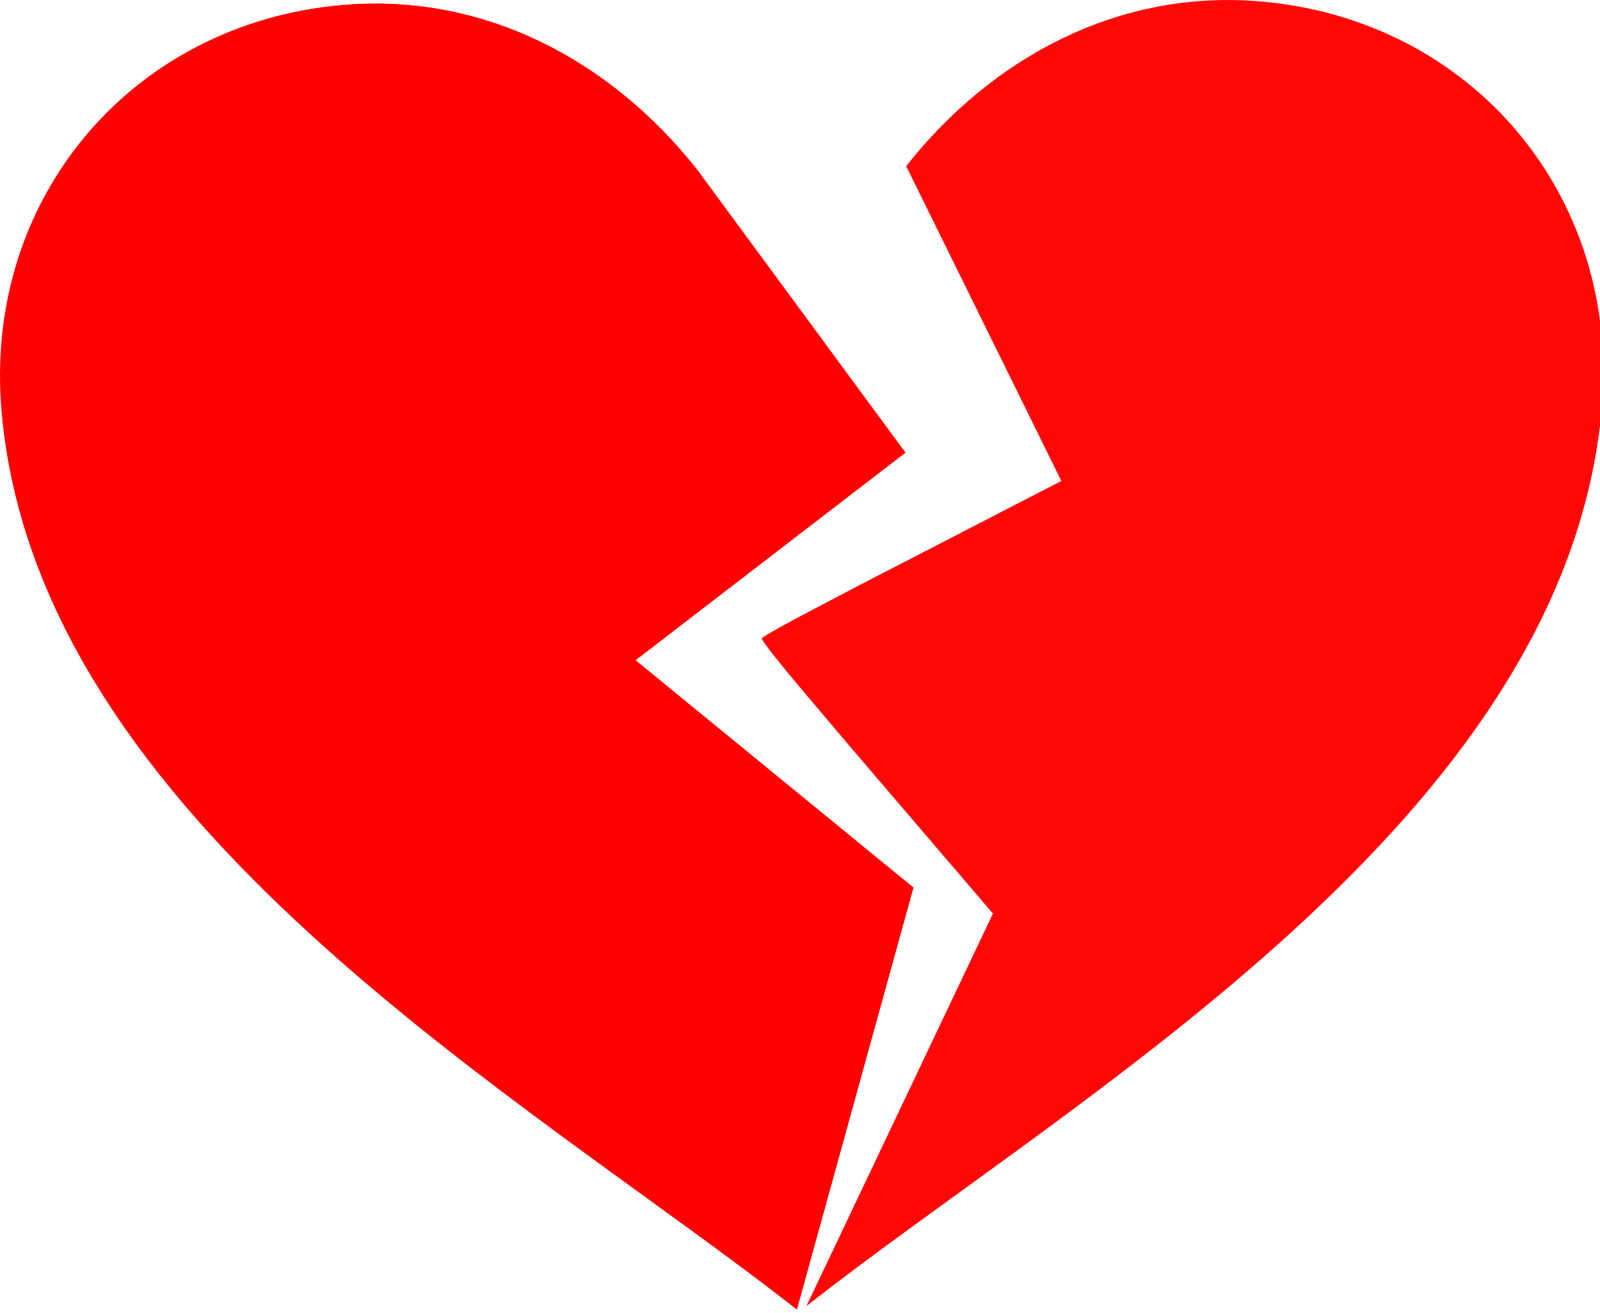 Hearts clipart relationship Images Clipart Heart Clipart Broken